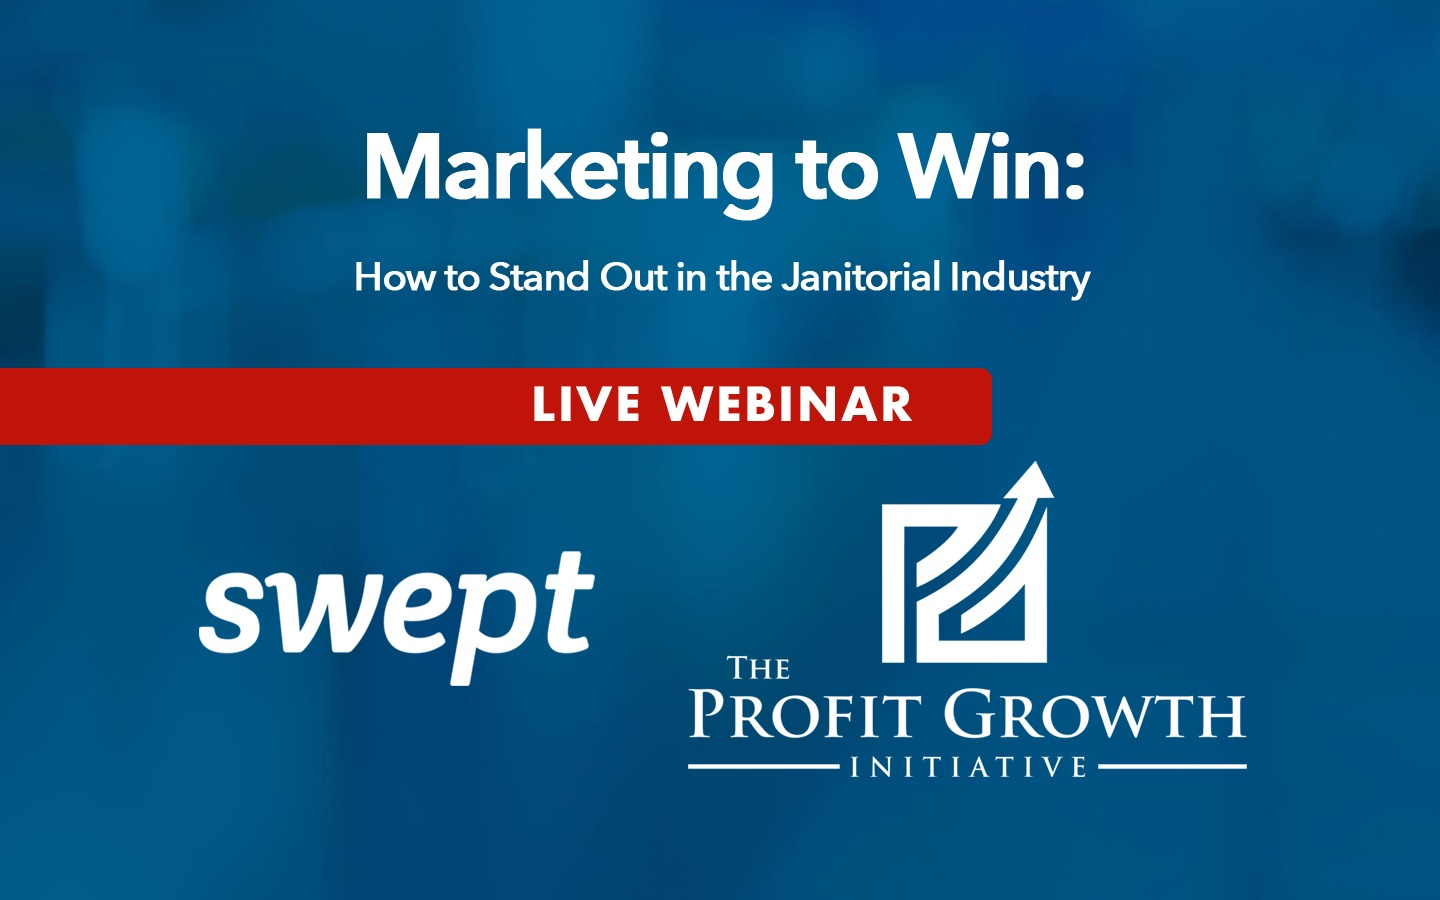 Marketing to Win: How to Stand Out in the Janitorial Industry